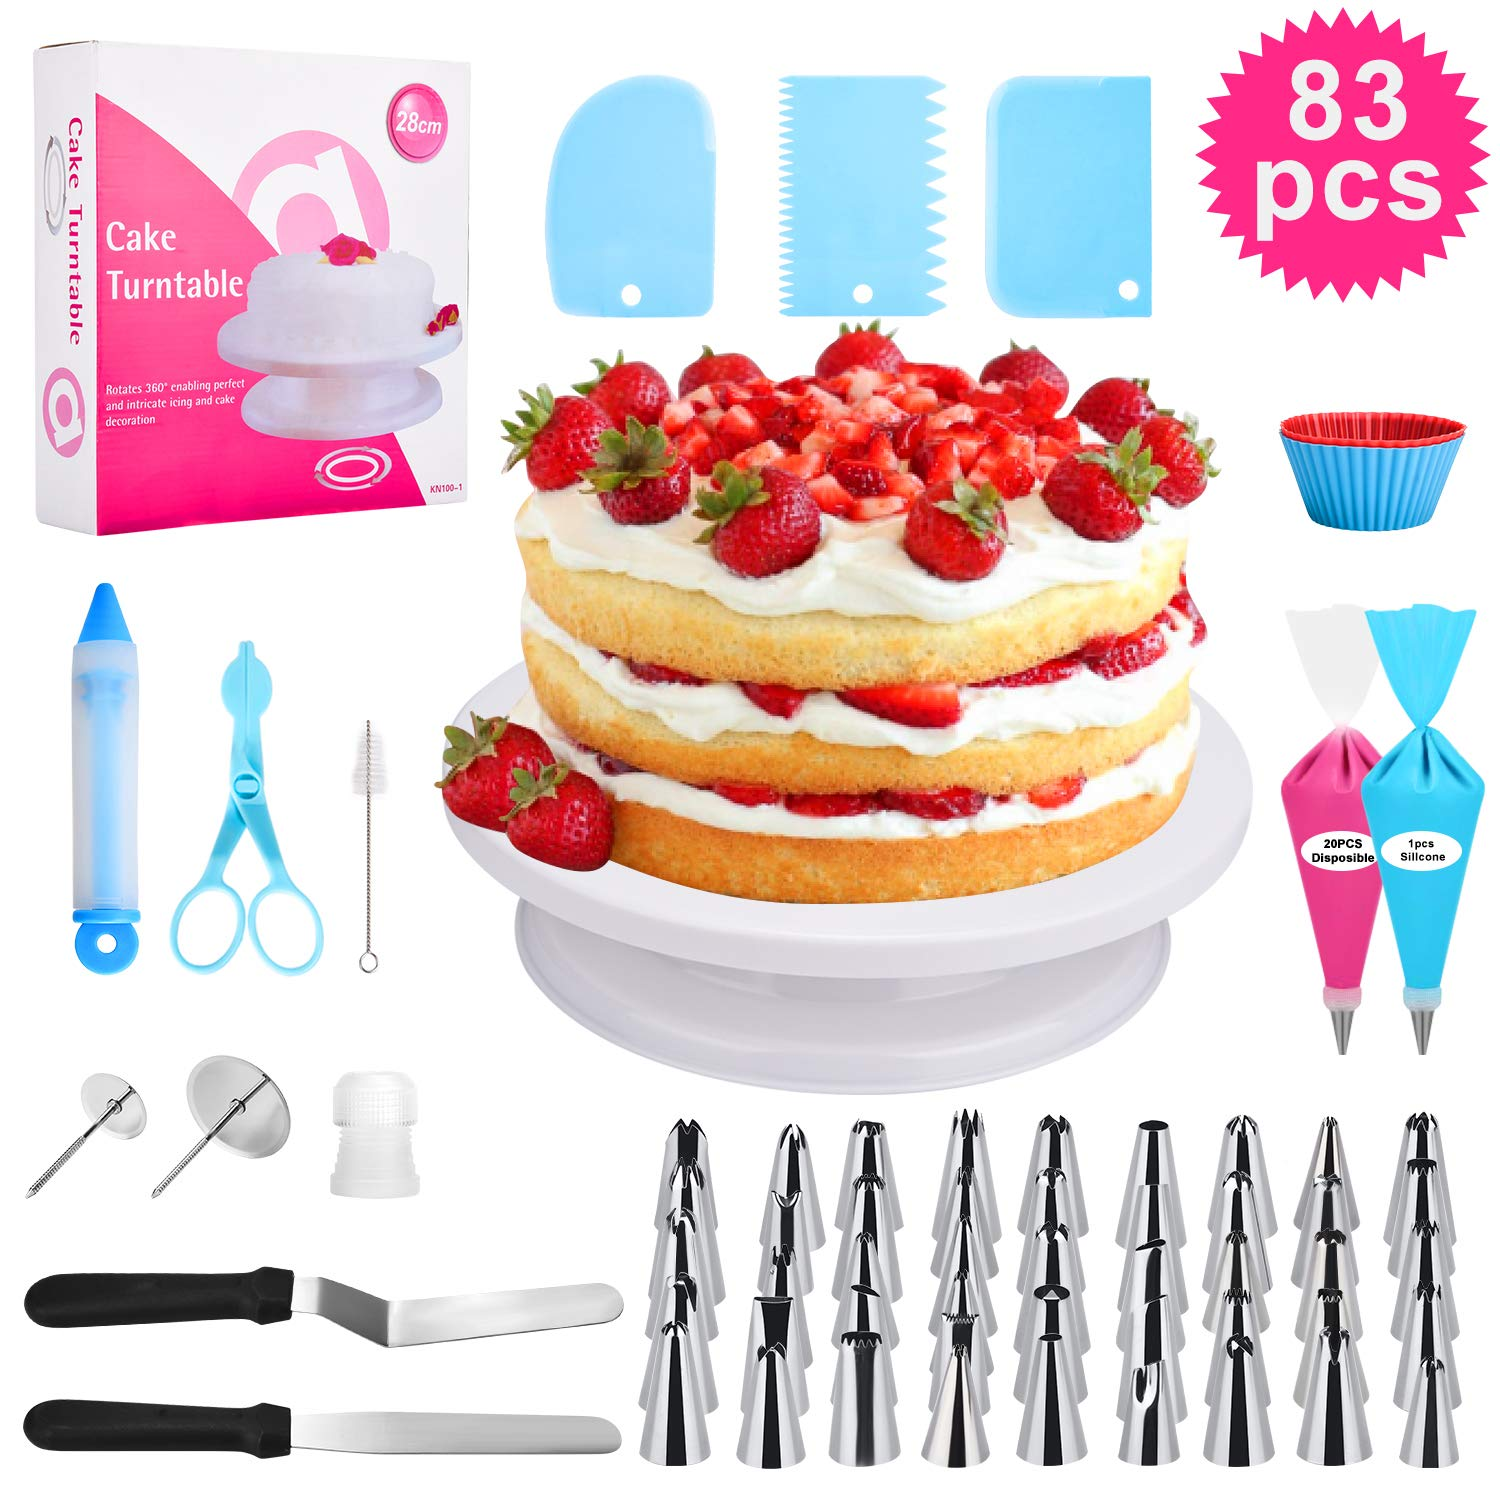 83 pcs Cake Decorating Supplies Kit,For Beginners-Cake Turntable Stand-Icing Tips, Pastry Bags, Icing Spatula, Icing Smoother,Flower Nails,Flower Lifters,Decorating Pen,Cupcake Molds,Cleaning Brush